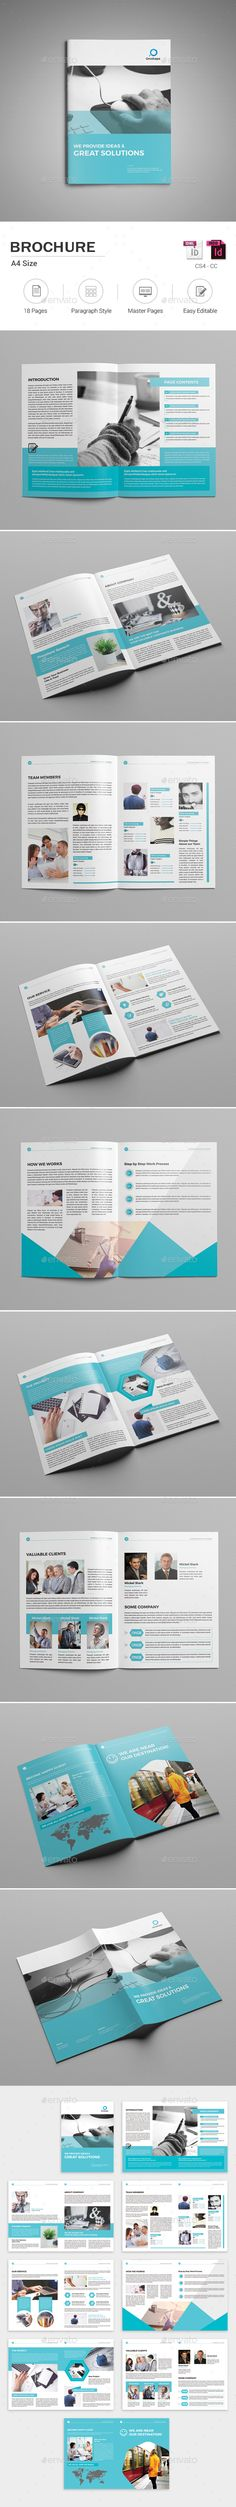 Brochure  — InDesign Template #8.27x11.69 #corporate • Download ➝ https://graphicriver.net/item/brochure/18271682?ref=pxcr